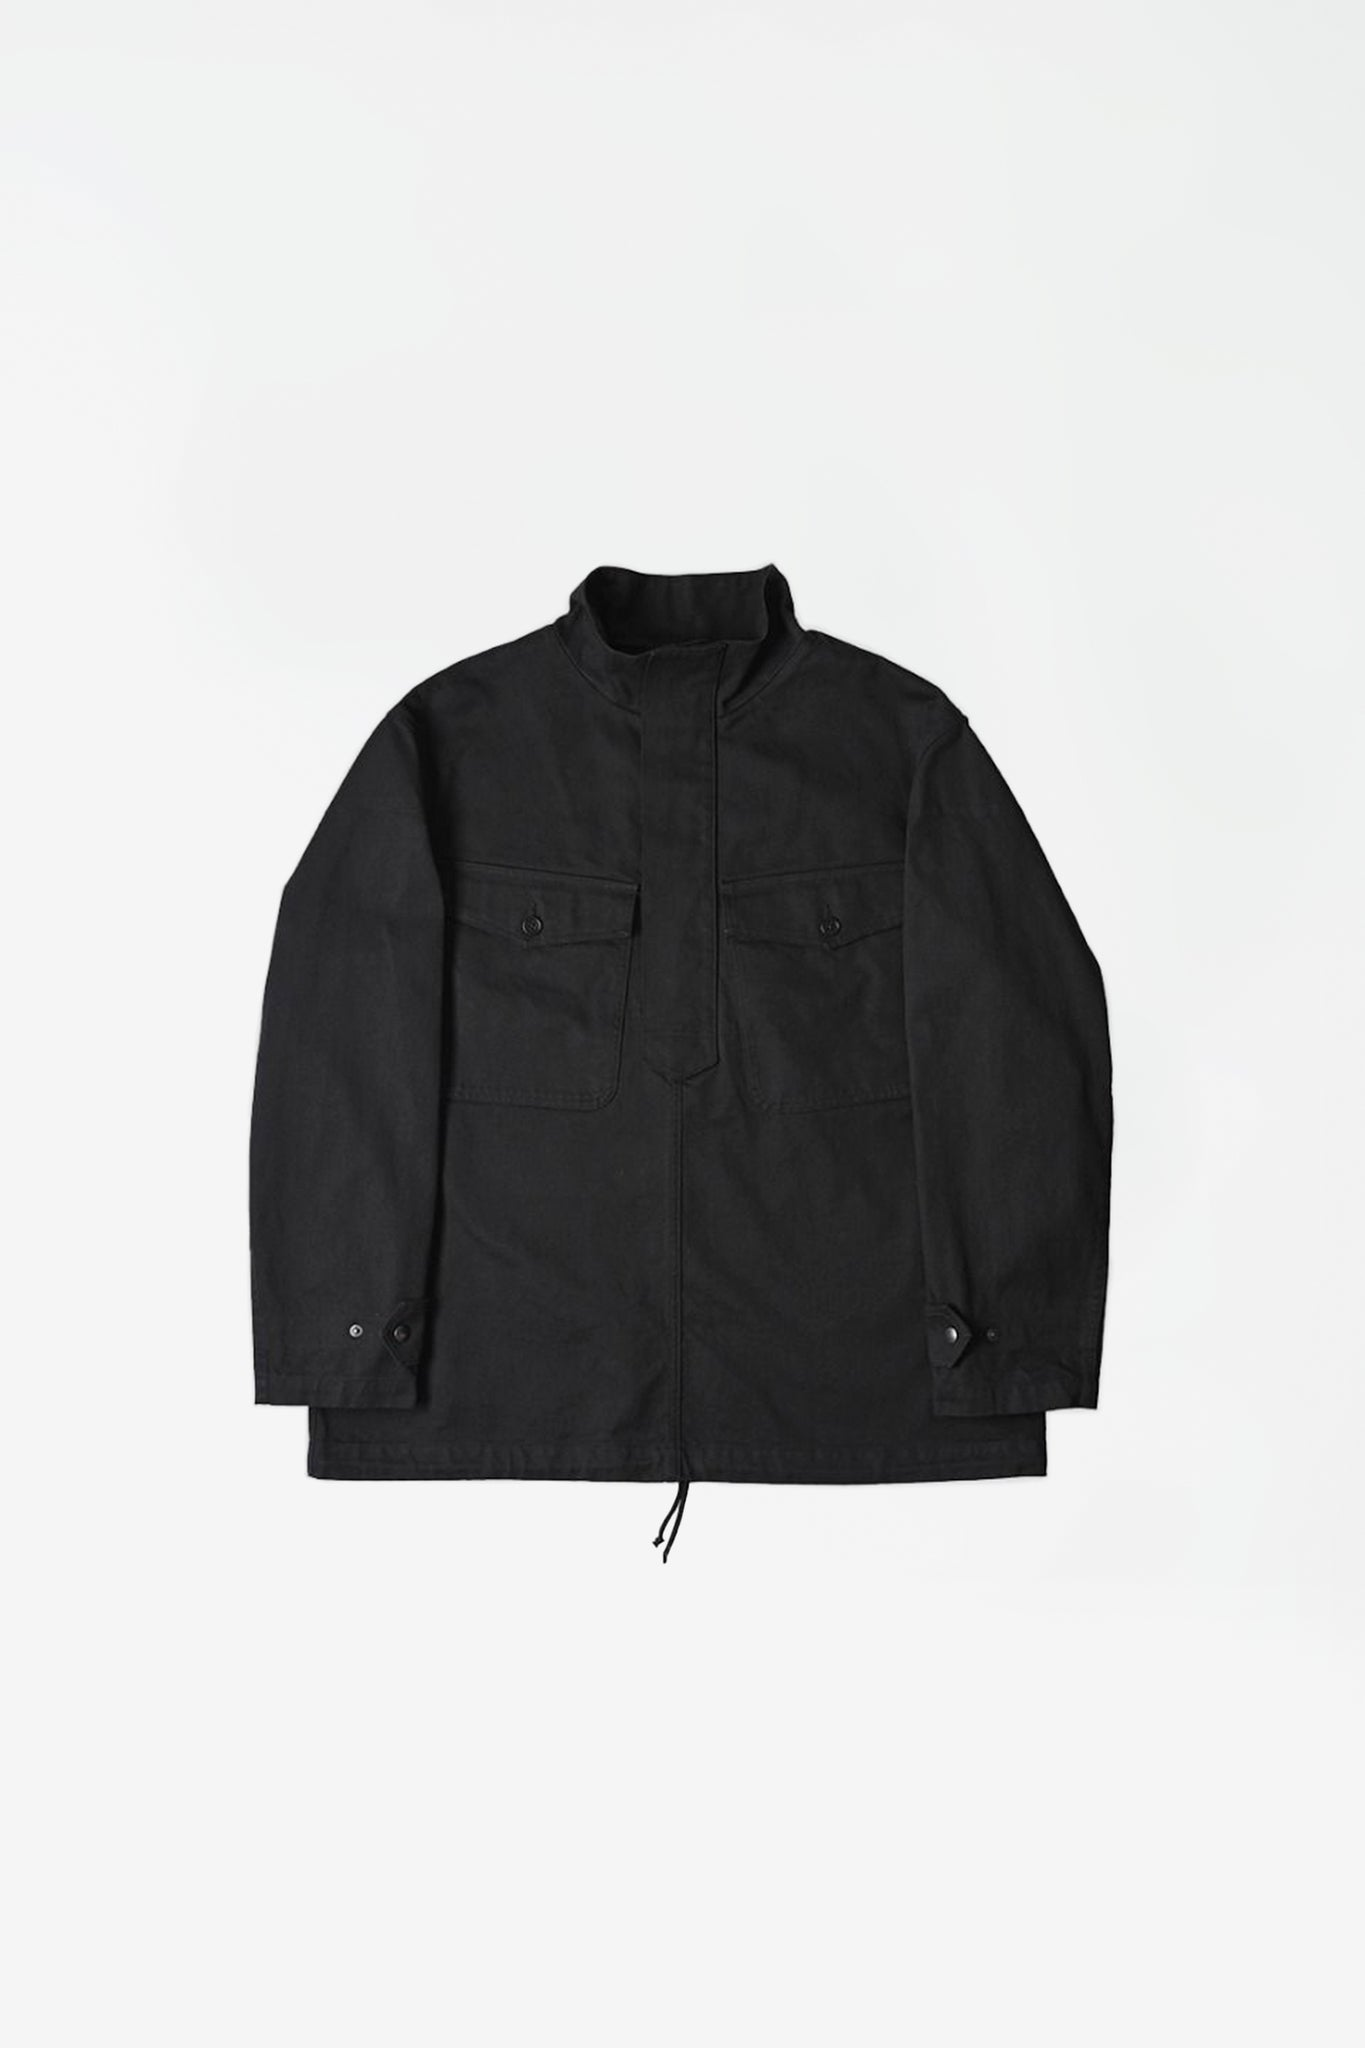 Parachute smock heavy cotton drill jacket black